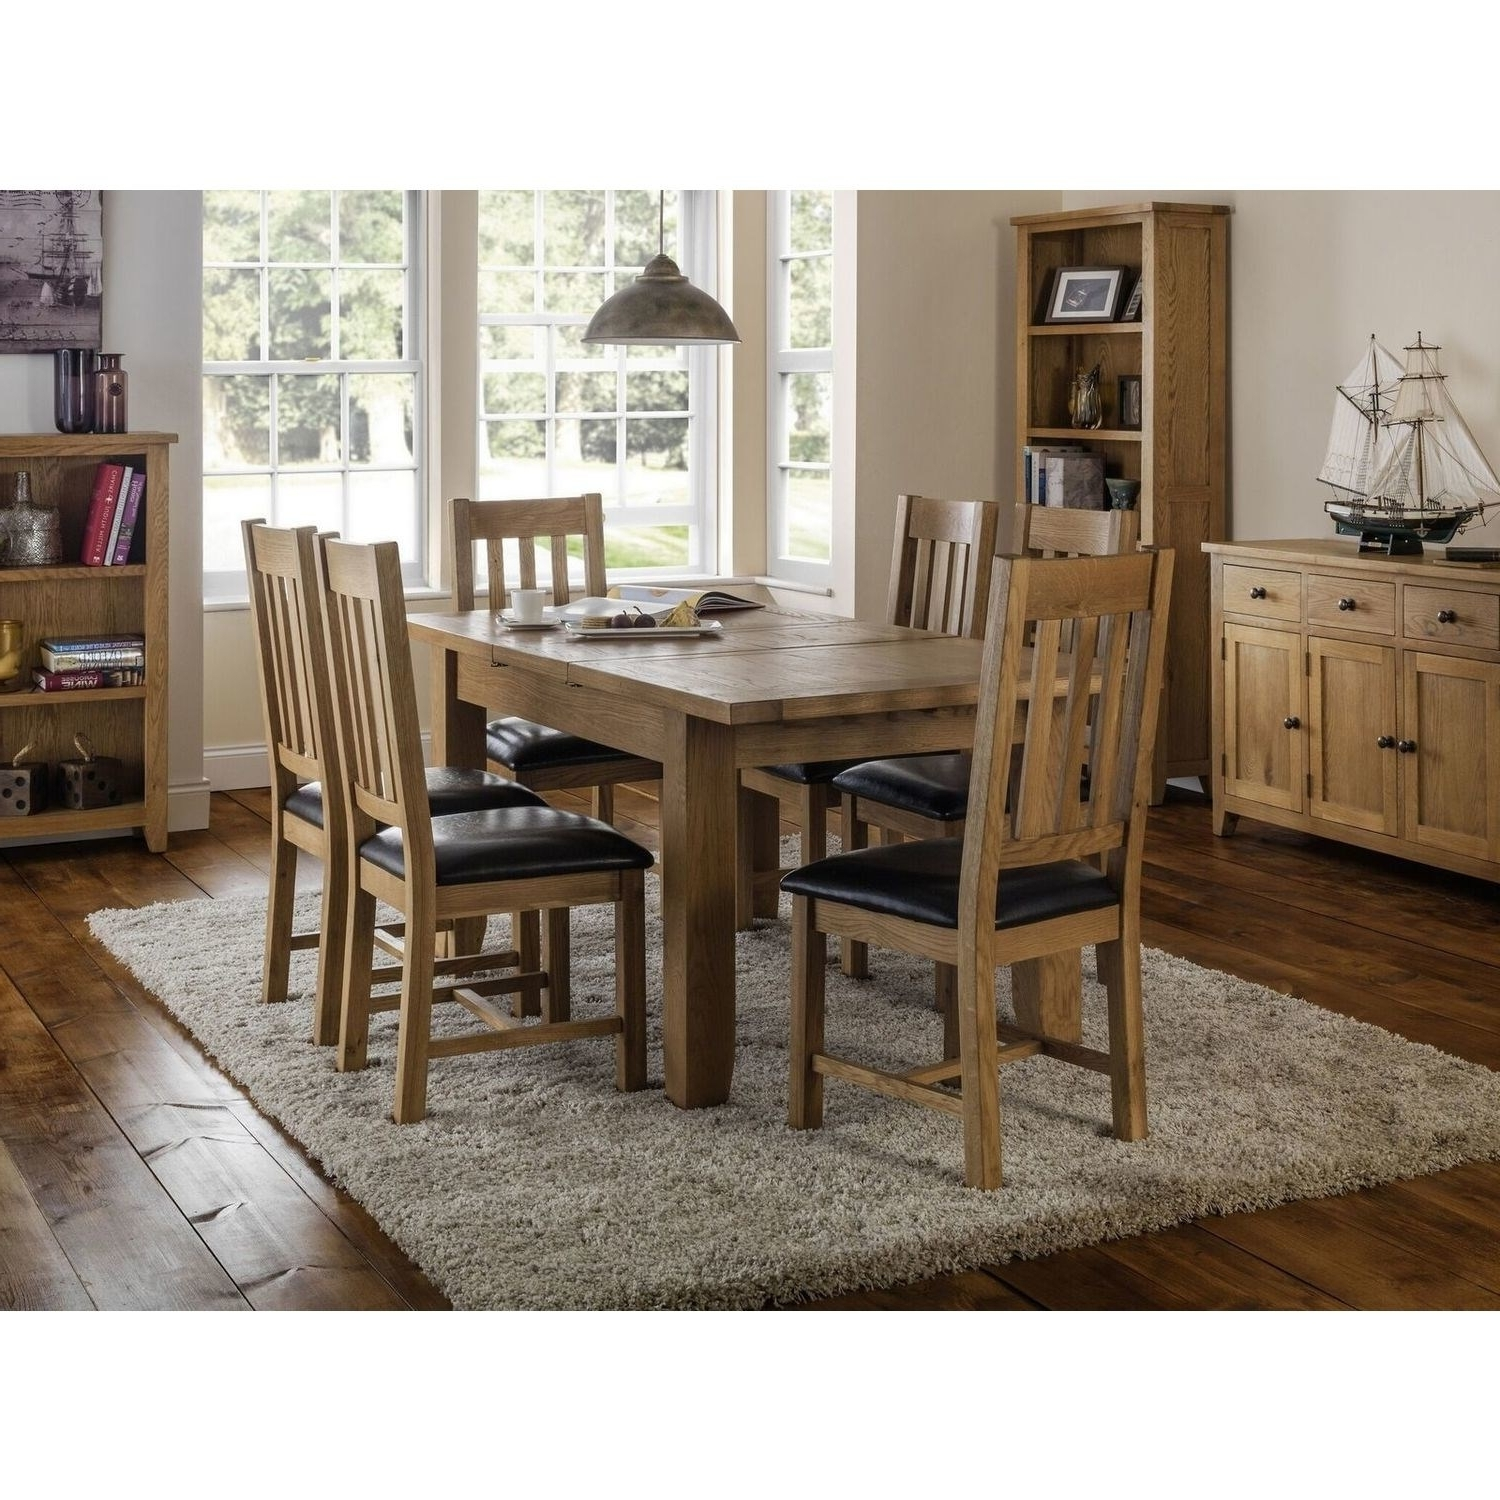 Extending Dining Table Sets In Famous Julian Bowen Astoria Extending Dining Table Set With 6 Astoria (View 9 of 25)